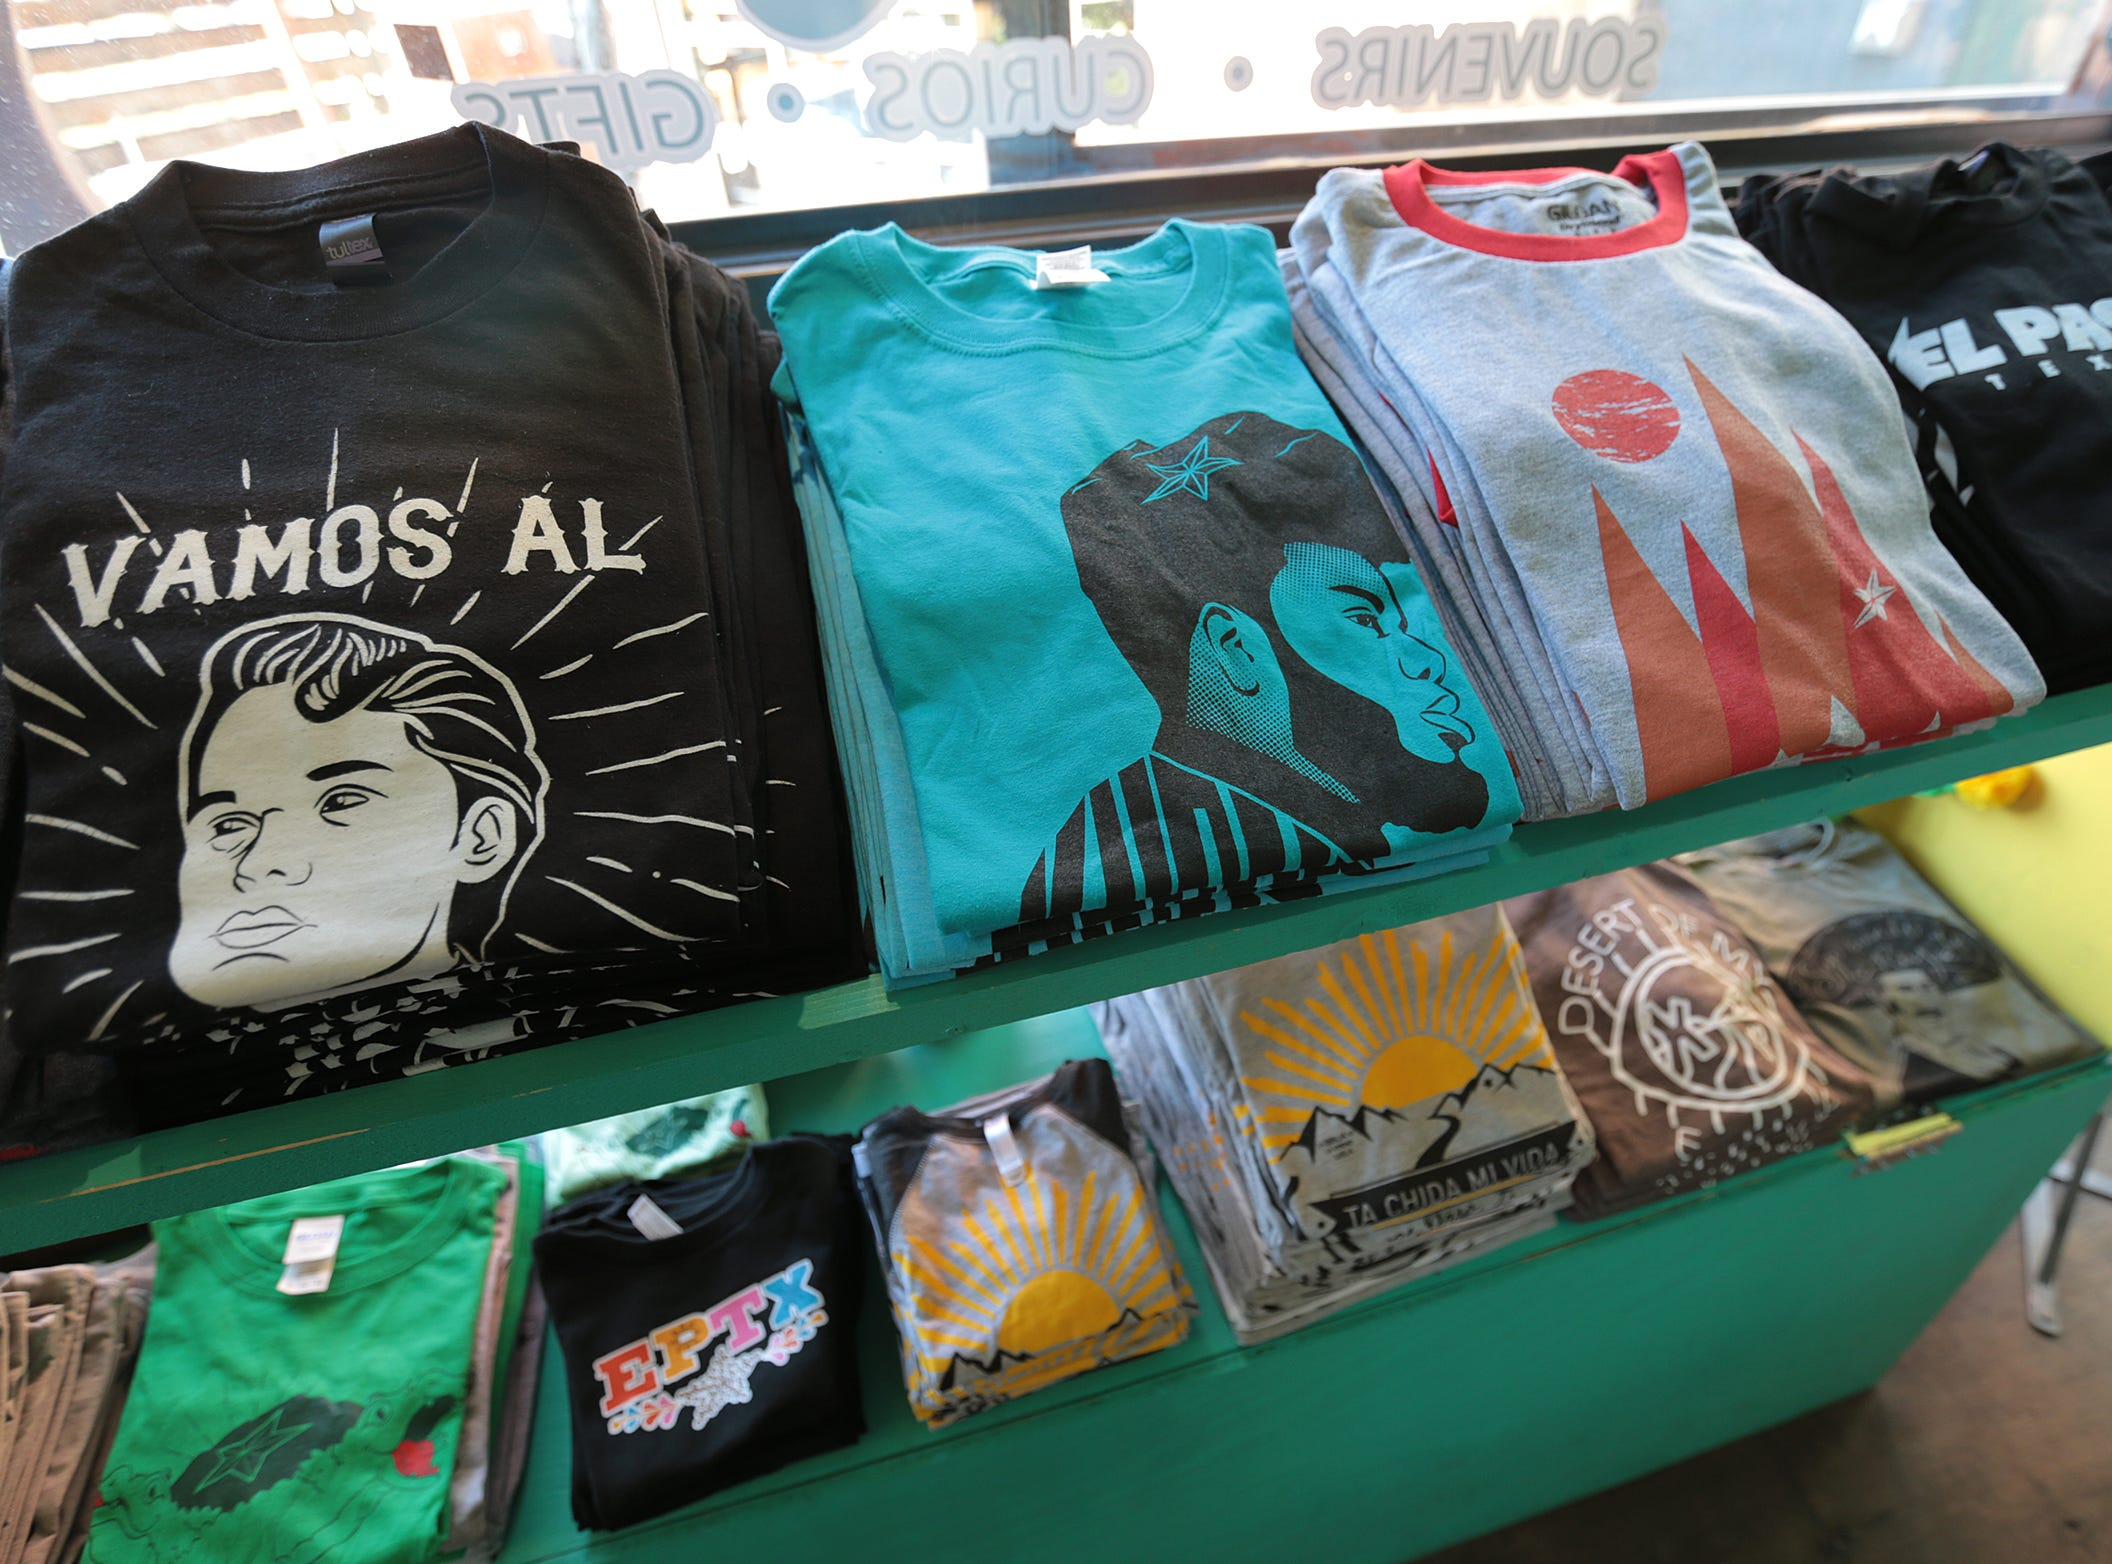 Chuco Relic sells a wide variety of original, locally produced t-shirts including a Khalid t-shirt.